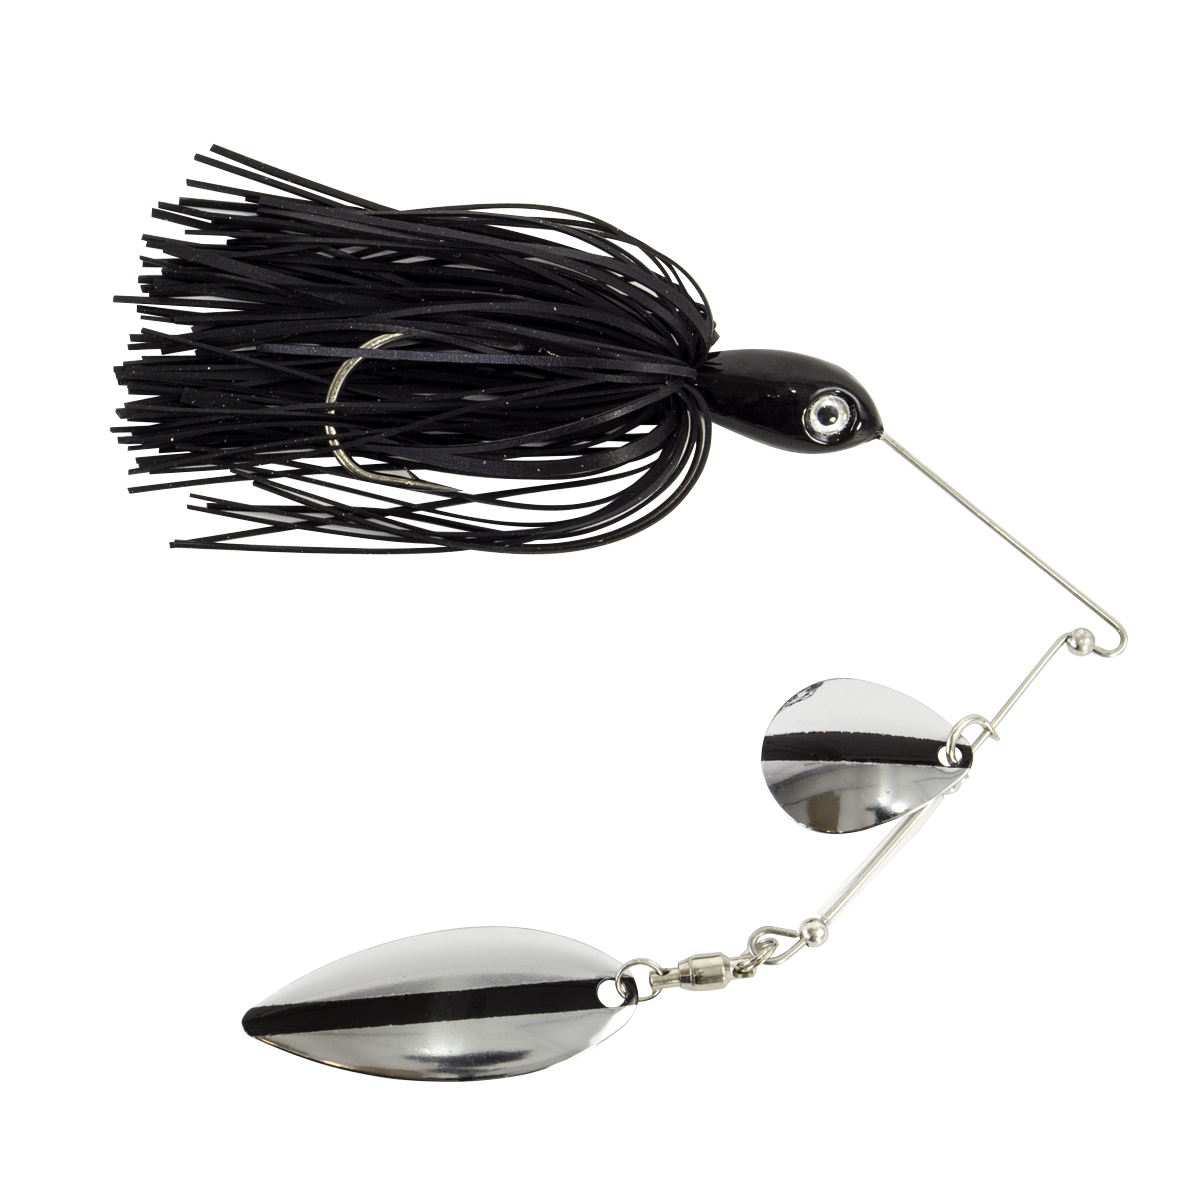 WIZARD SPINNERBAIT 14G COL.3